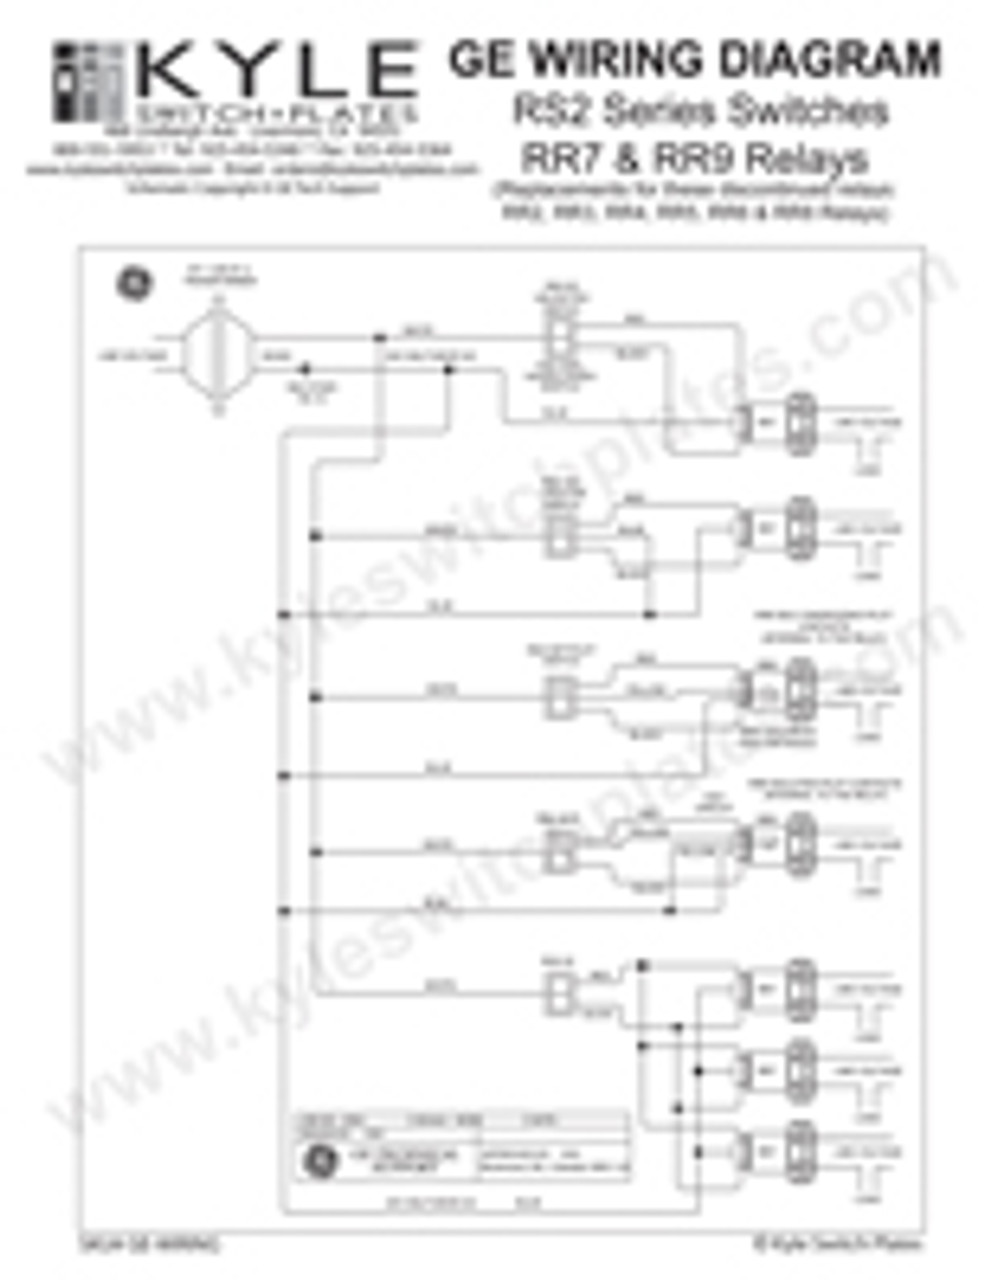 Low Voltage Relay Switch : voltage, relay, switch, Voltage, Switch, Relay, Wiring, Instruction, Guide